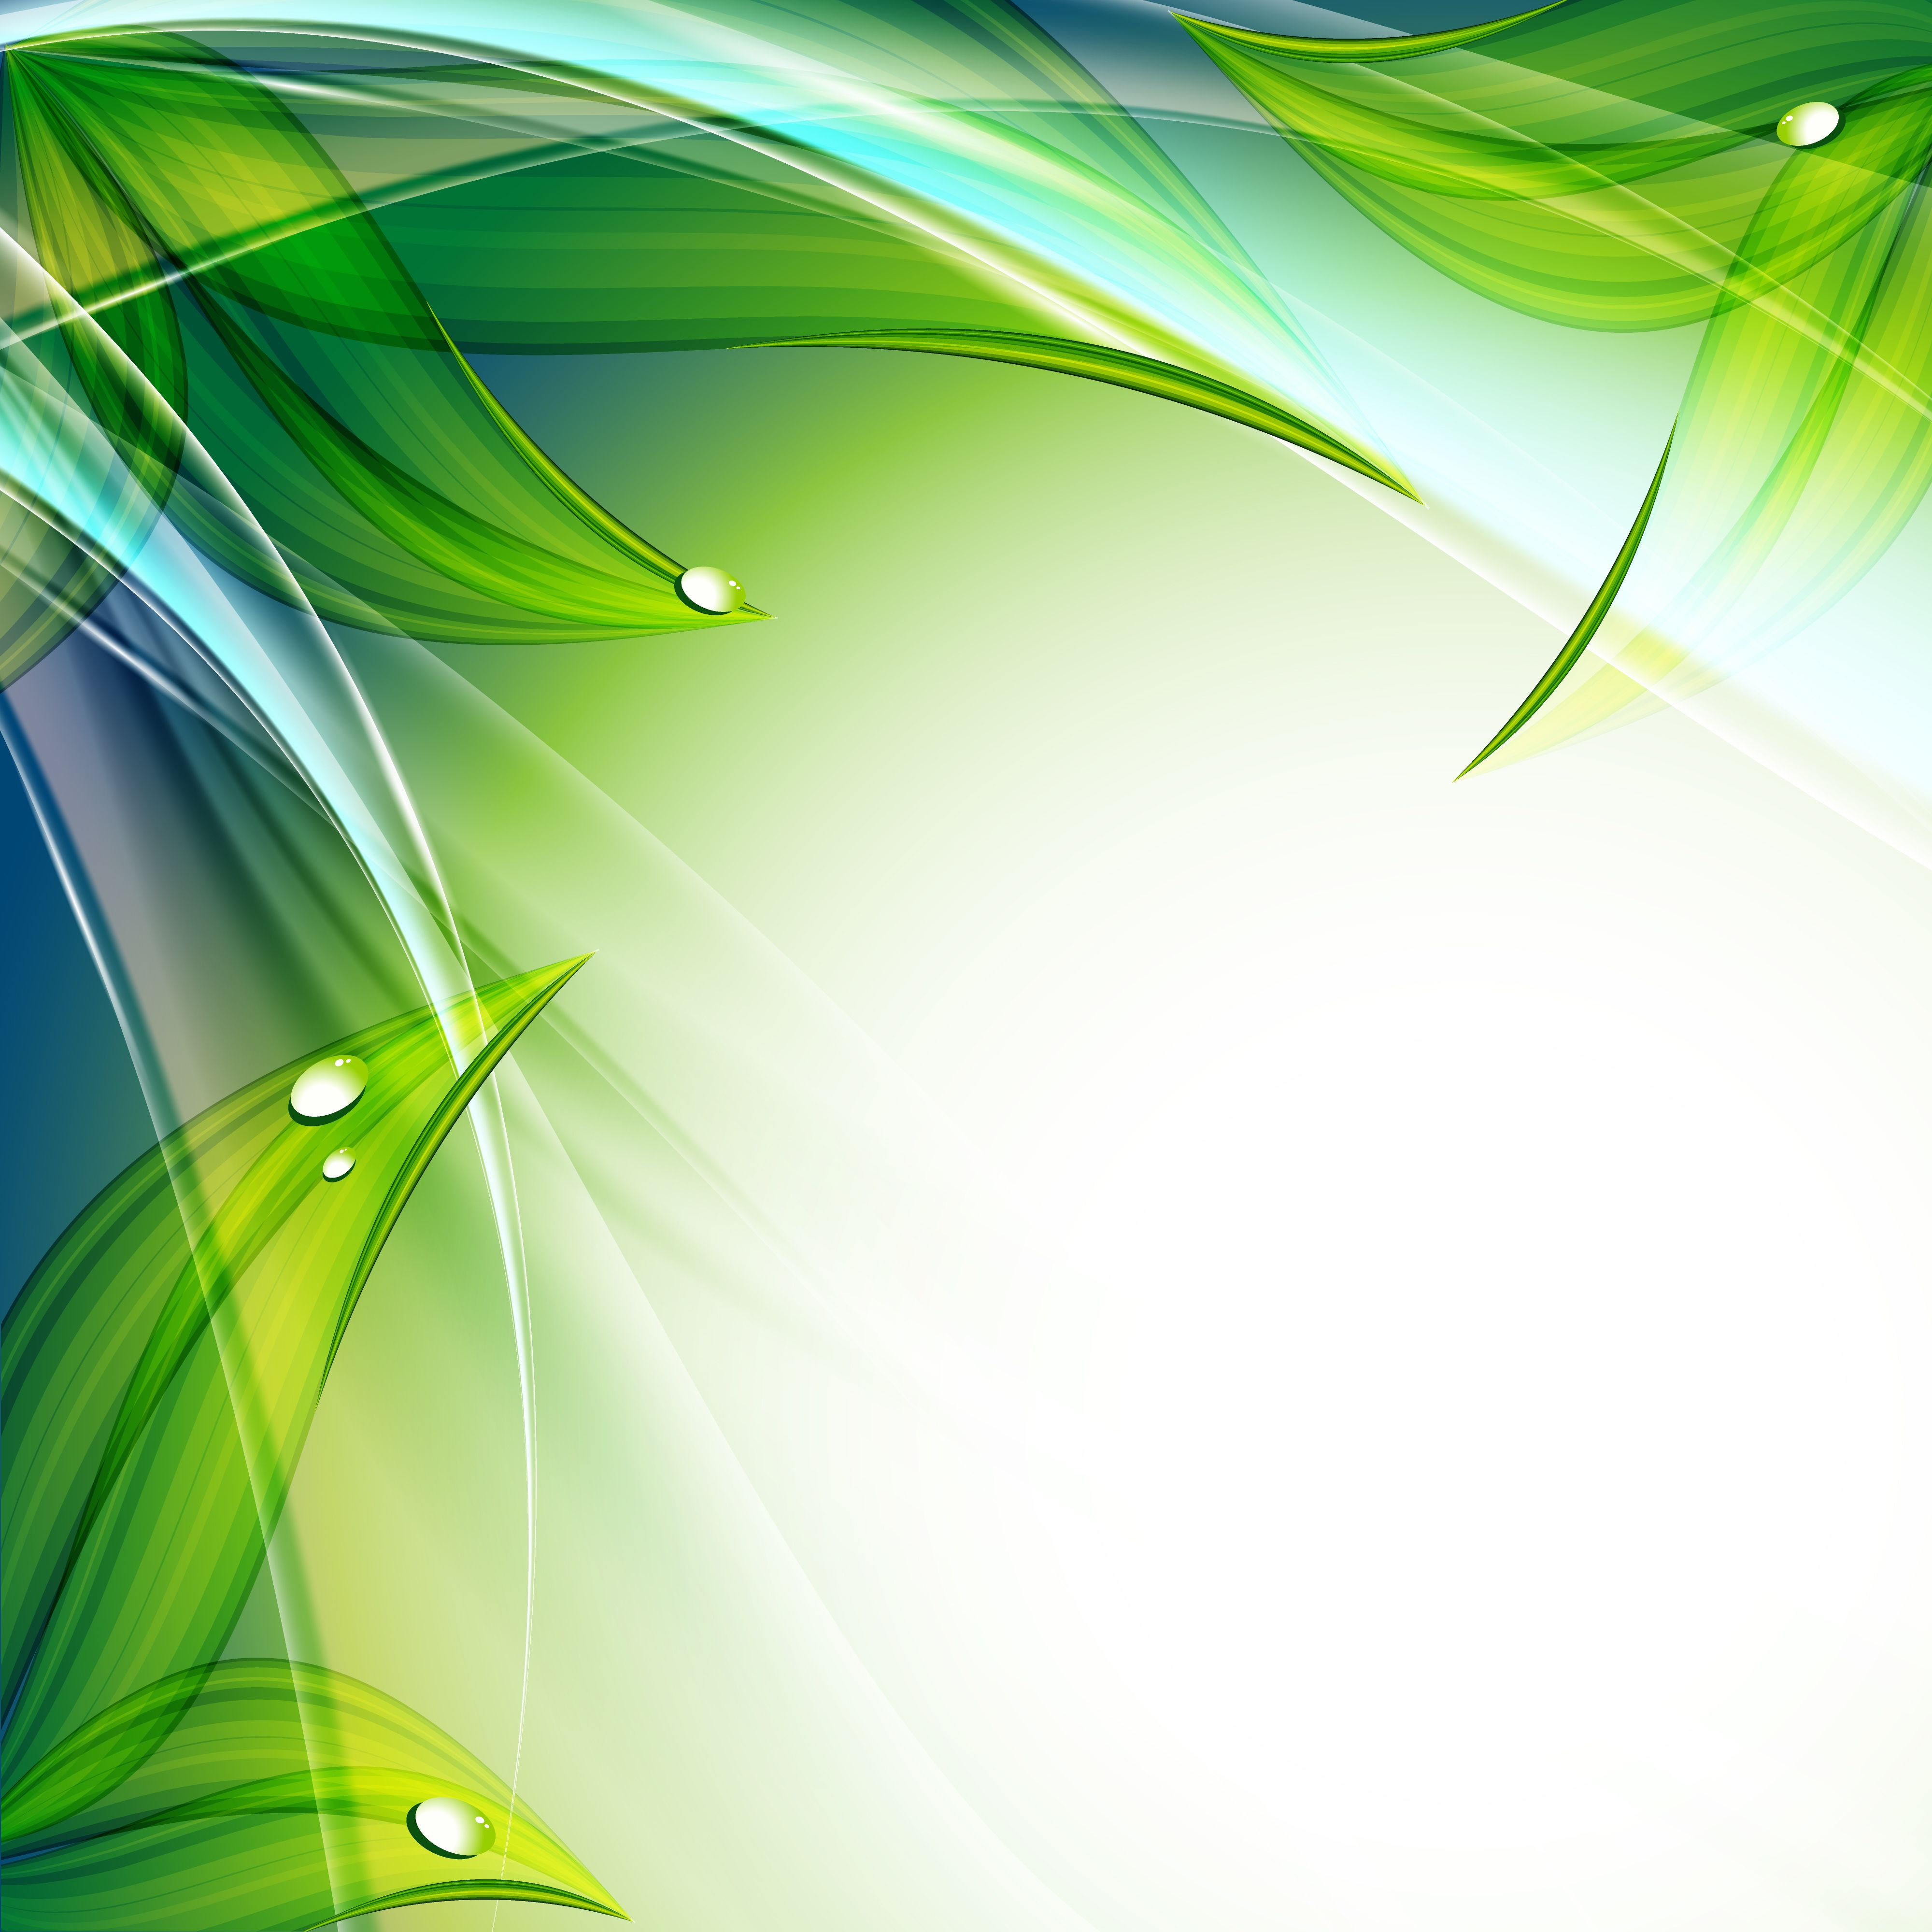 White Background with Green Curves 4238090, 4000x4000